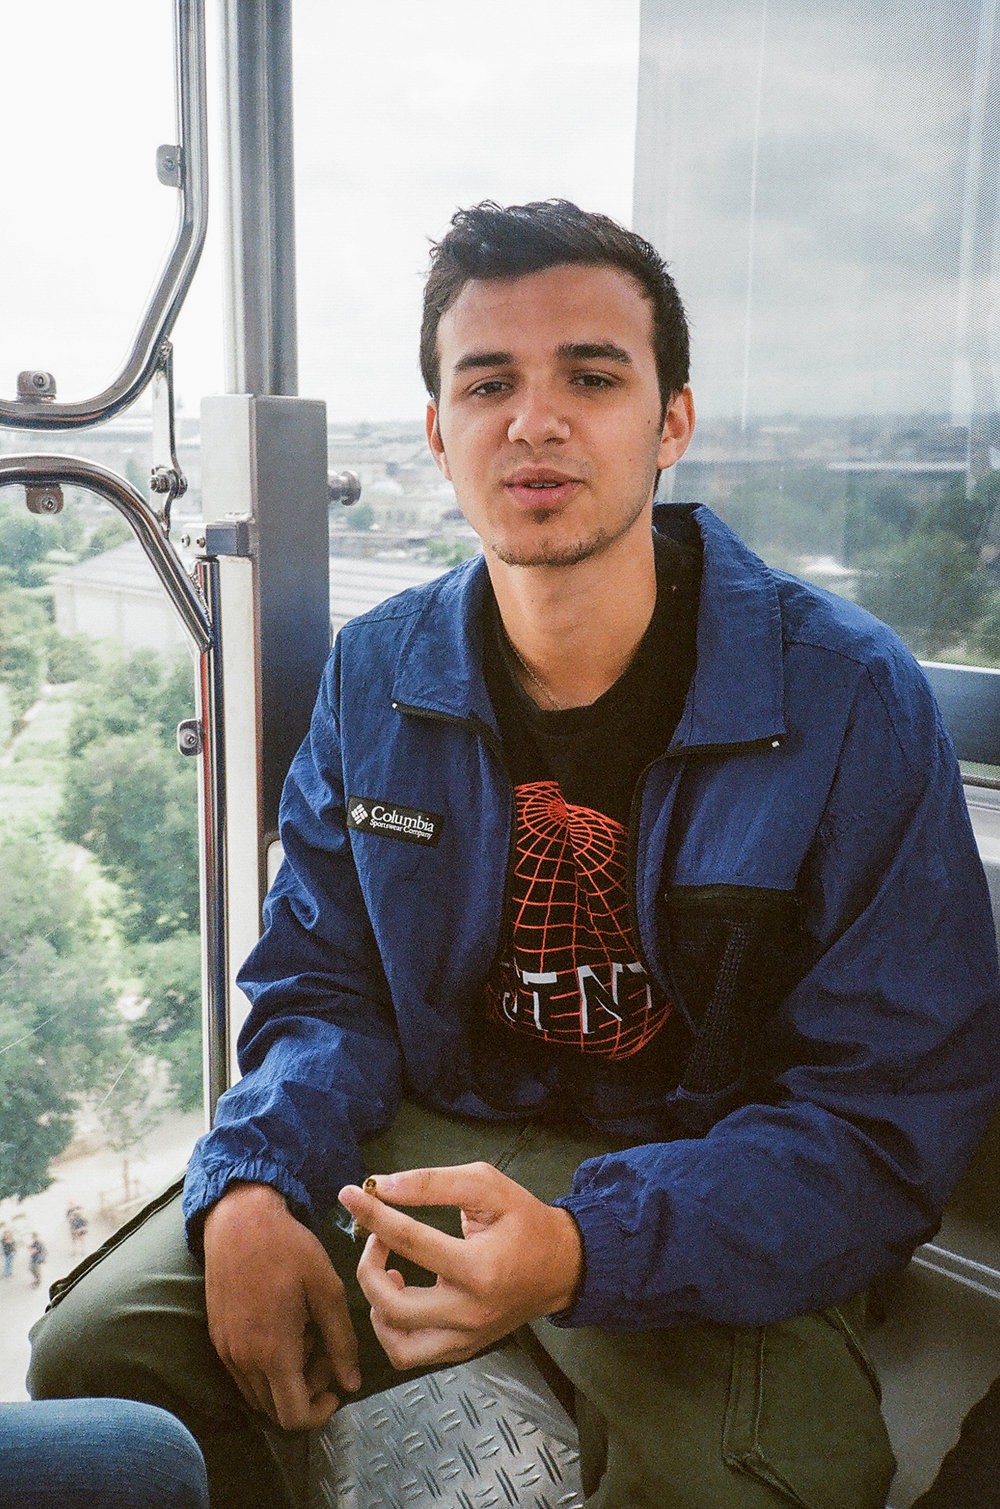 Marcelo smoking on a Ferris Wheel in Paris